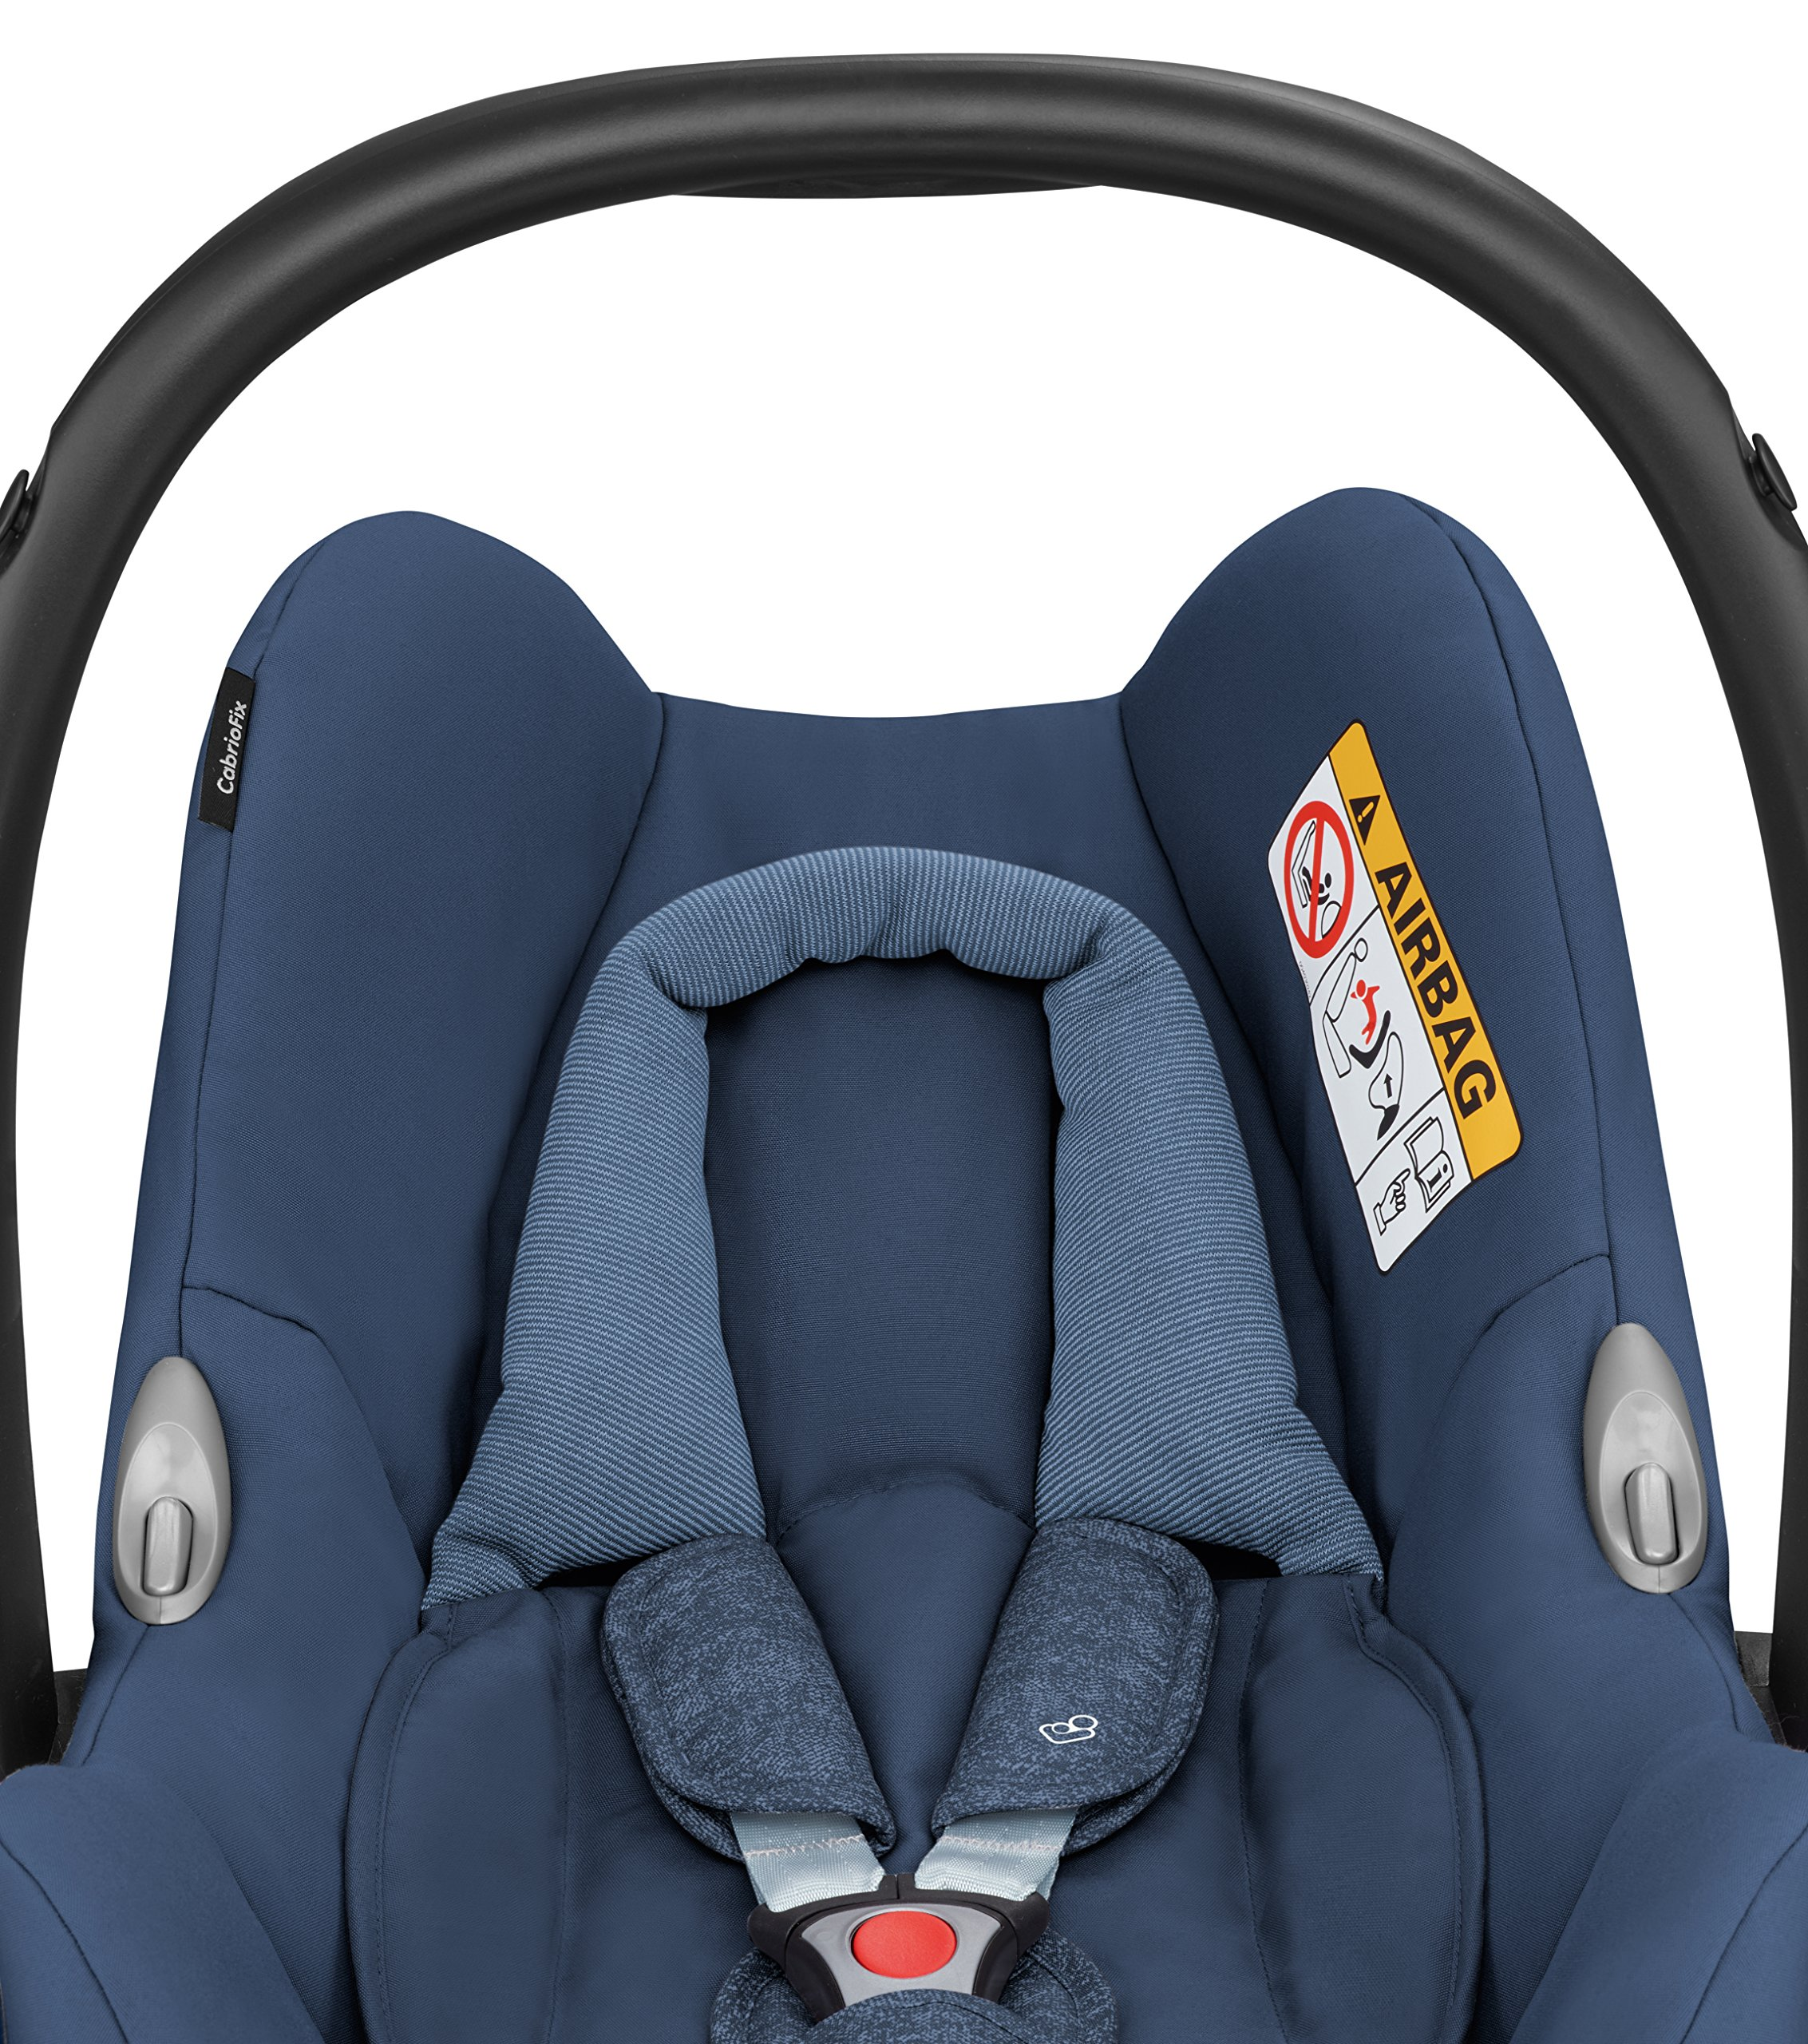 Maxi-Cosi Cabriofix Group 0+ Car Seat, Nomad Blue with EasyFix Car Seat Base, Isofix and Belt Maxi-Cosi Optimal side impact protection: maxi-cost's side protection system technology features in the wings of the car seat to reduce the risk of injury in a side impact collision Click-and-go installation: quick and easy installation with any maxi-cost base unit Flexible travel system: compatible with a variety of pushchairs including quinsy and maxi-cost pushchairs 4